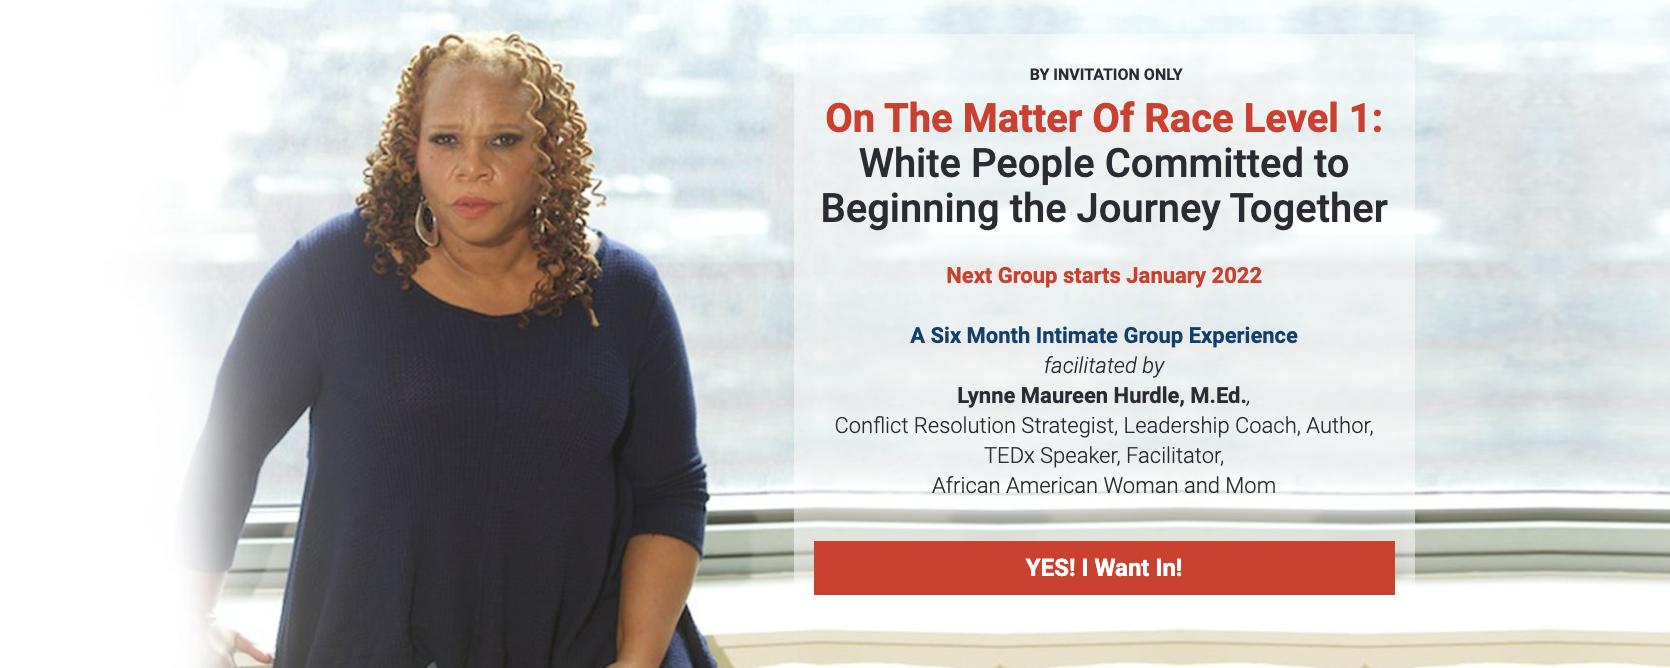 On the Matter of Race with Lynne Maureen Hurdle